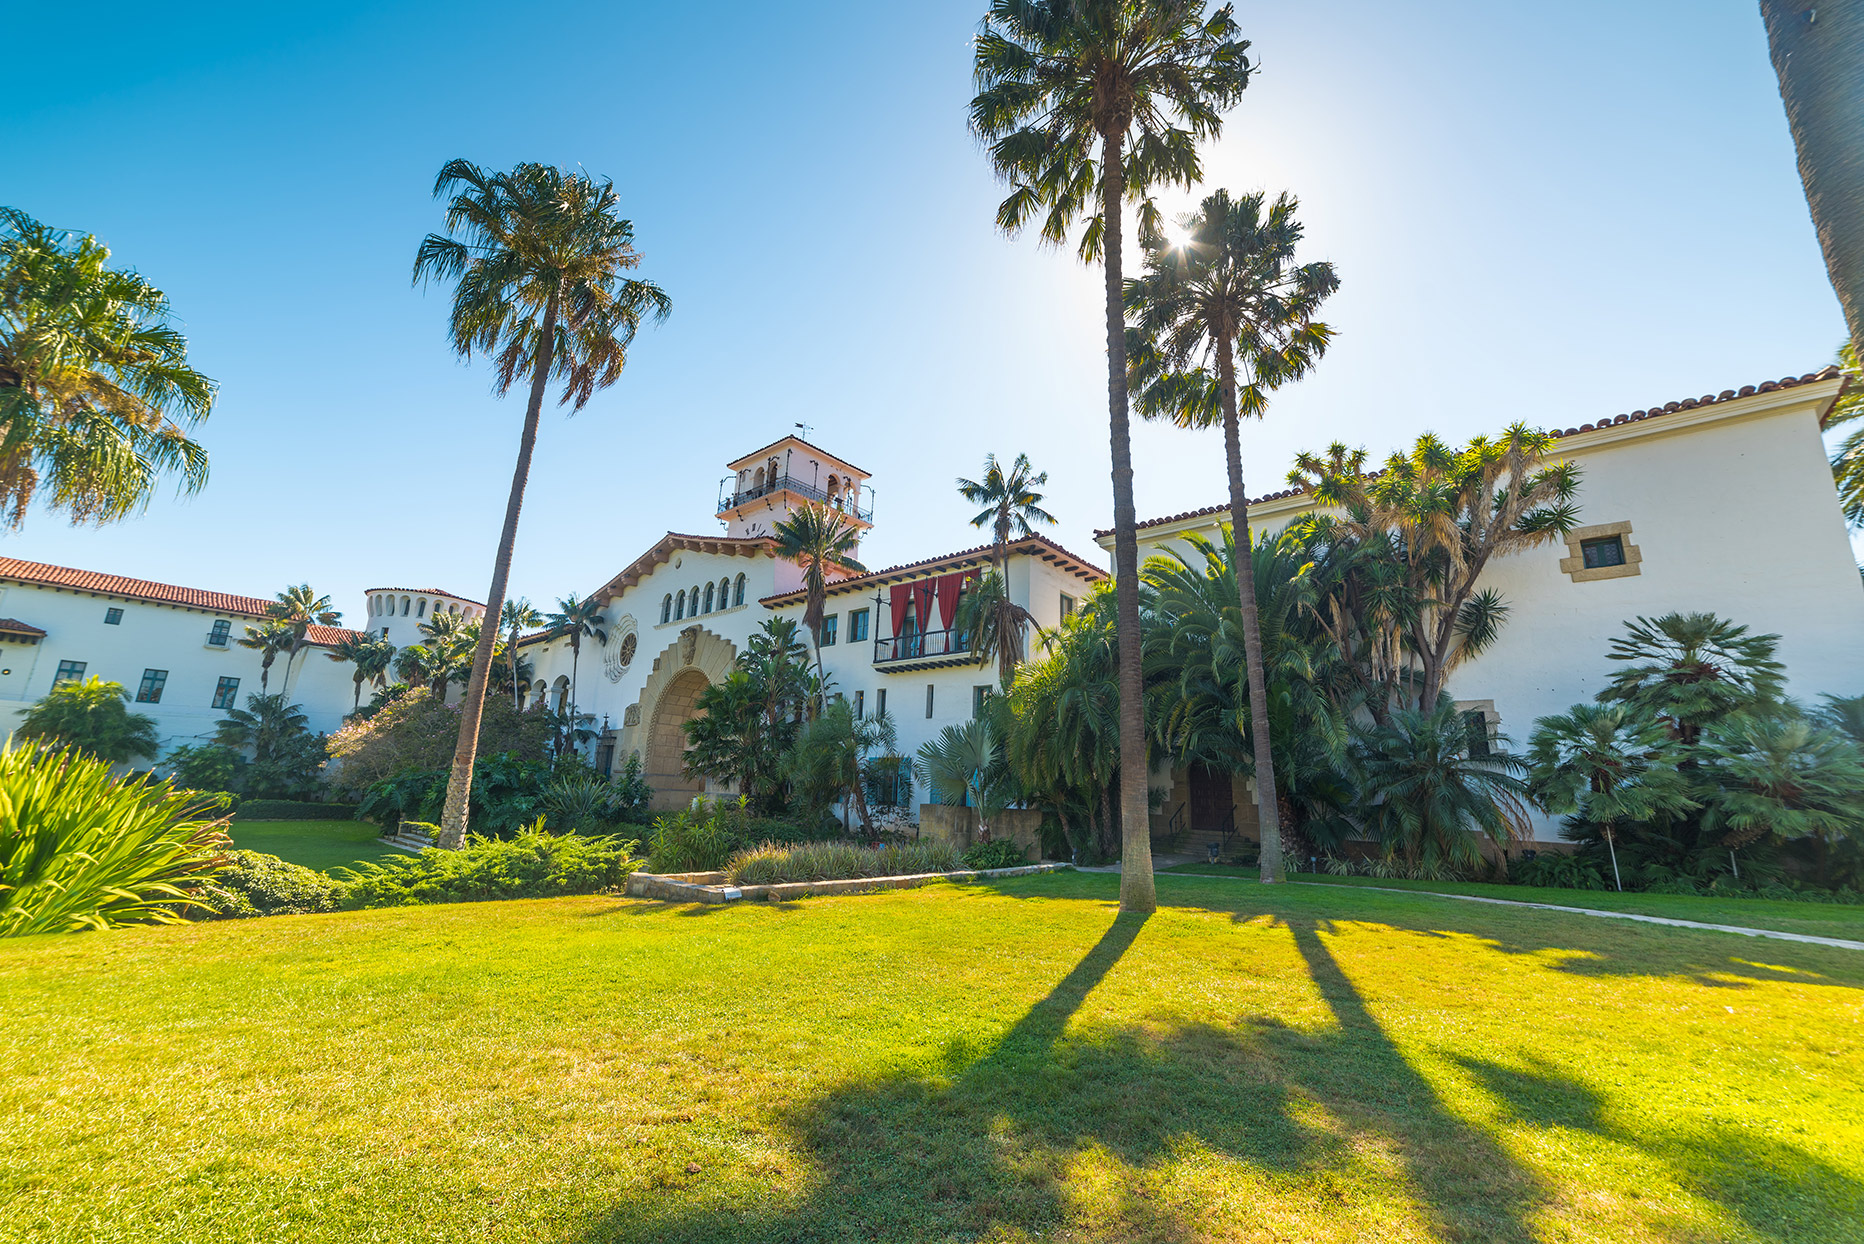 spanish colonial style home palm trees